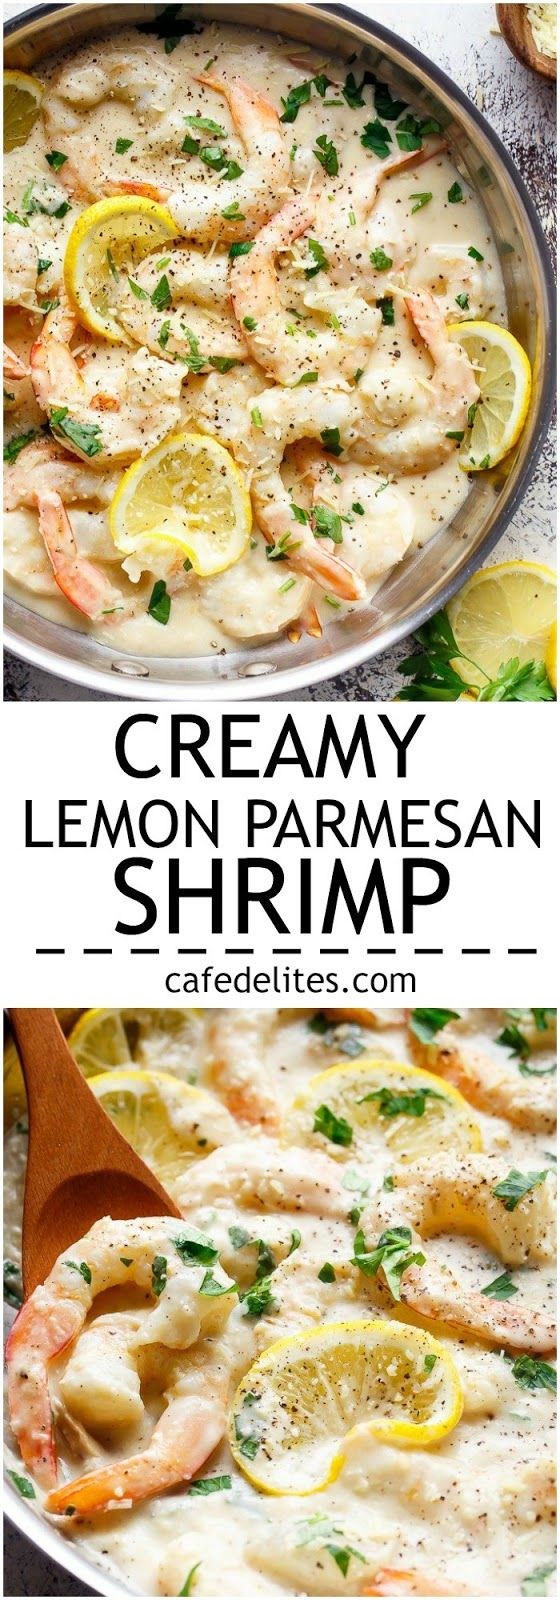 Creamy Lemon Parmesan Shrimp is a restaurant quality gourmet meal! Only minutes to make and full of lemon parmesan flavours with a good kick of garlic and NO HEAVY CREAMS as an option! Plus no dairy options! | http://cafedelites.com